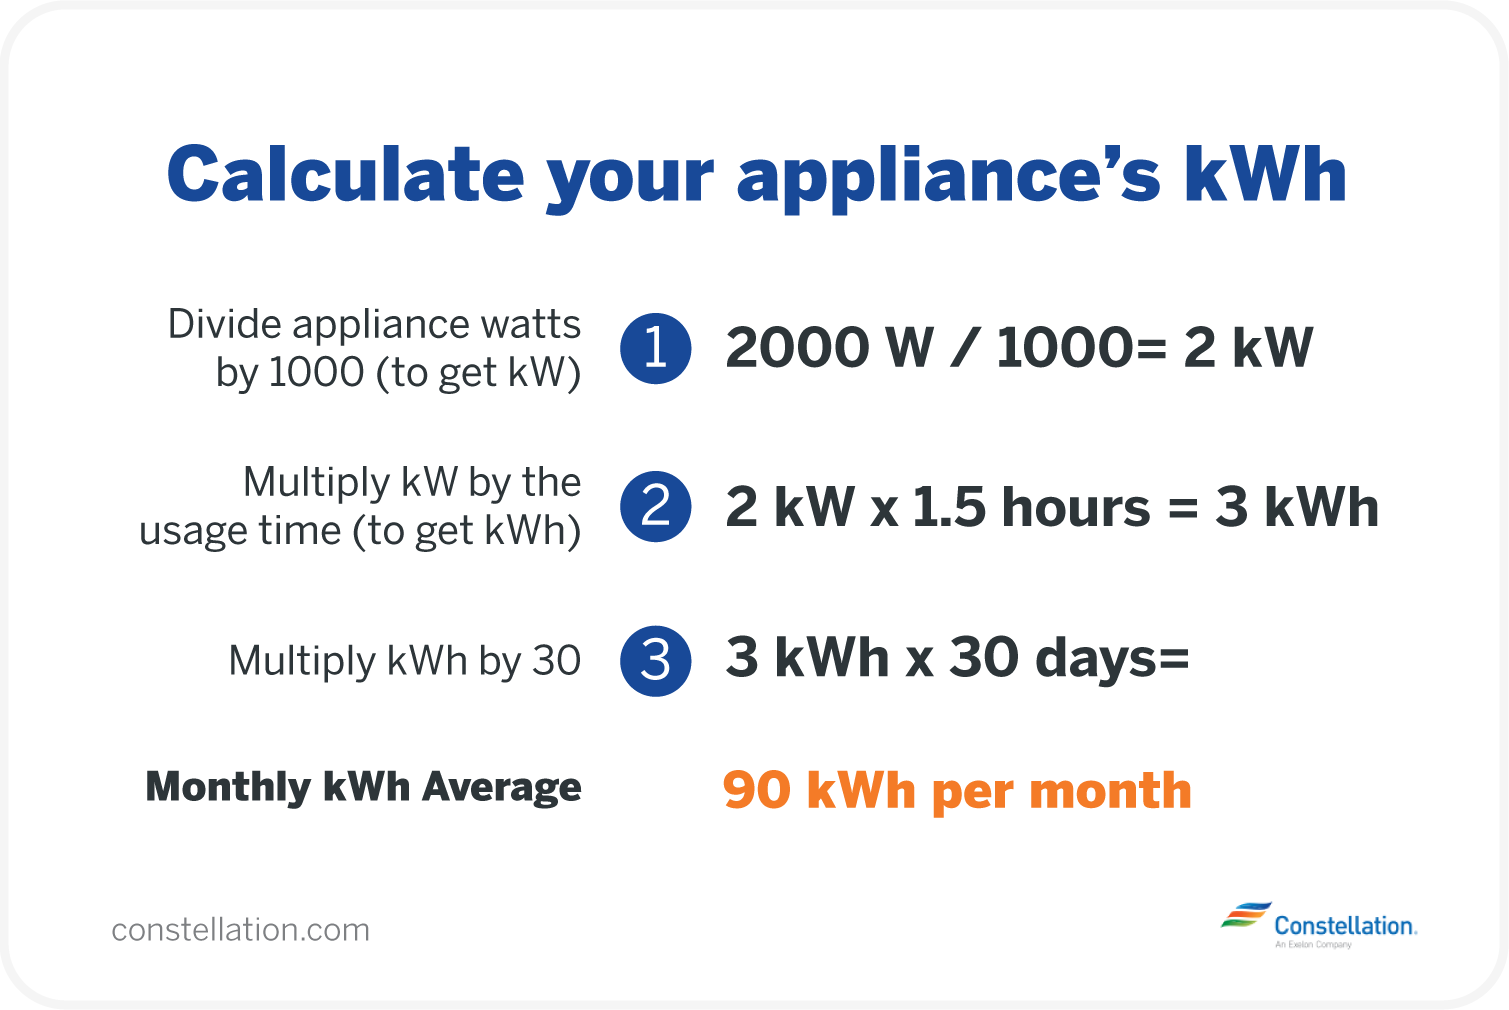 Calculate your appliance's kWh